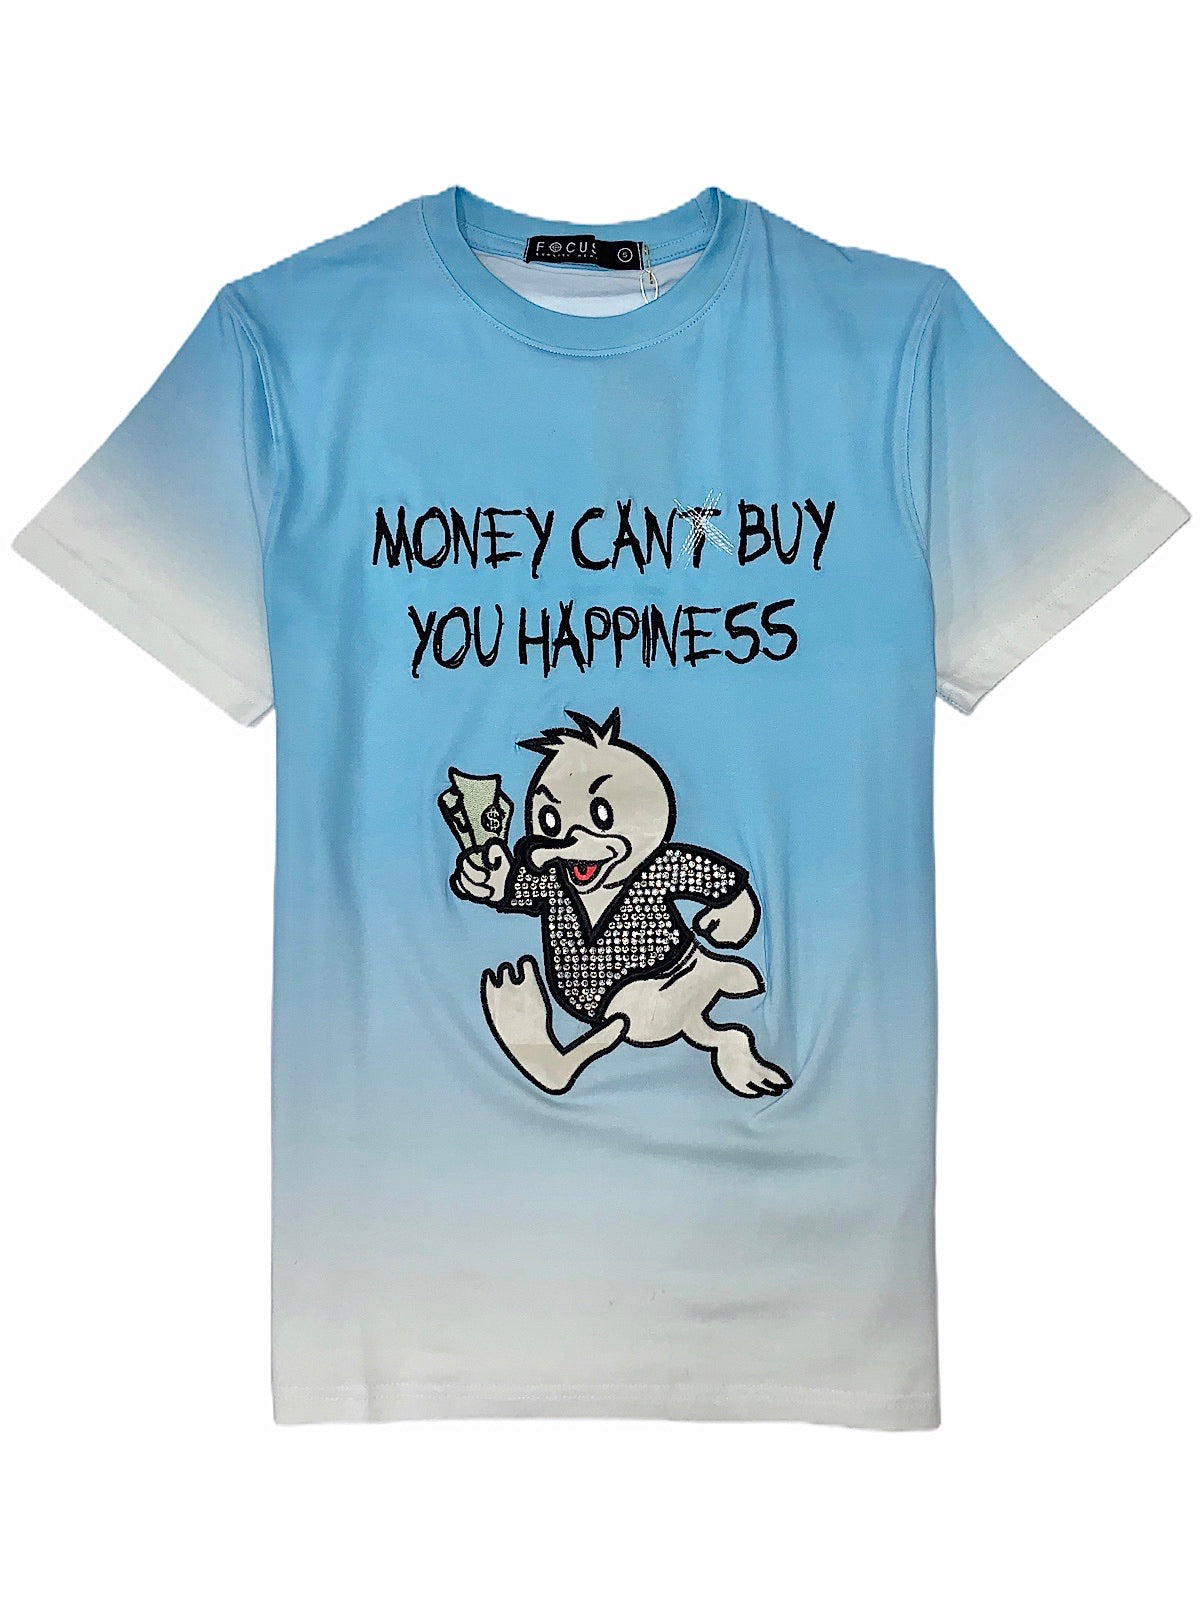 Focus T-Shirt - Happiness - Sky Blue And White - 80365